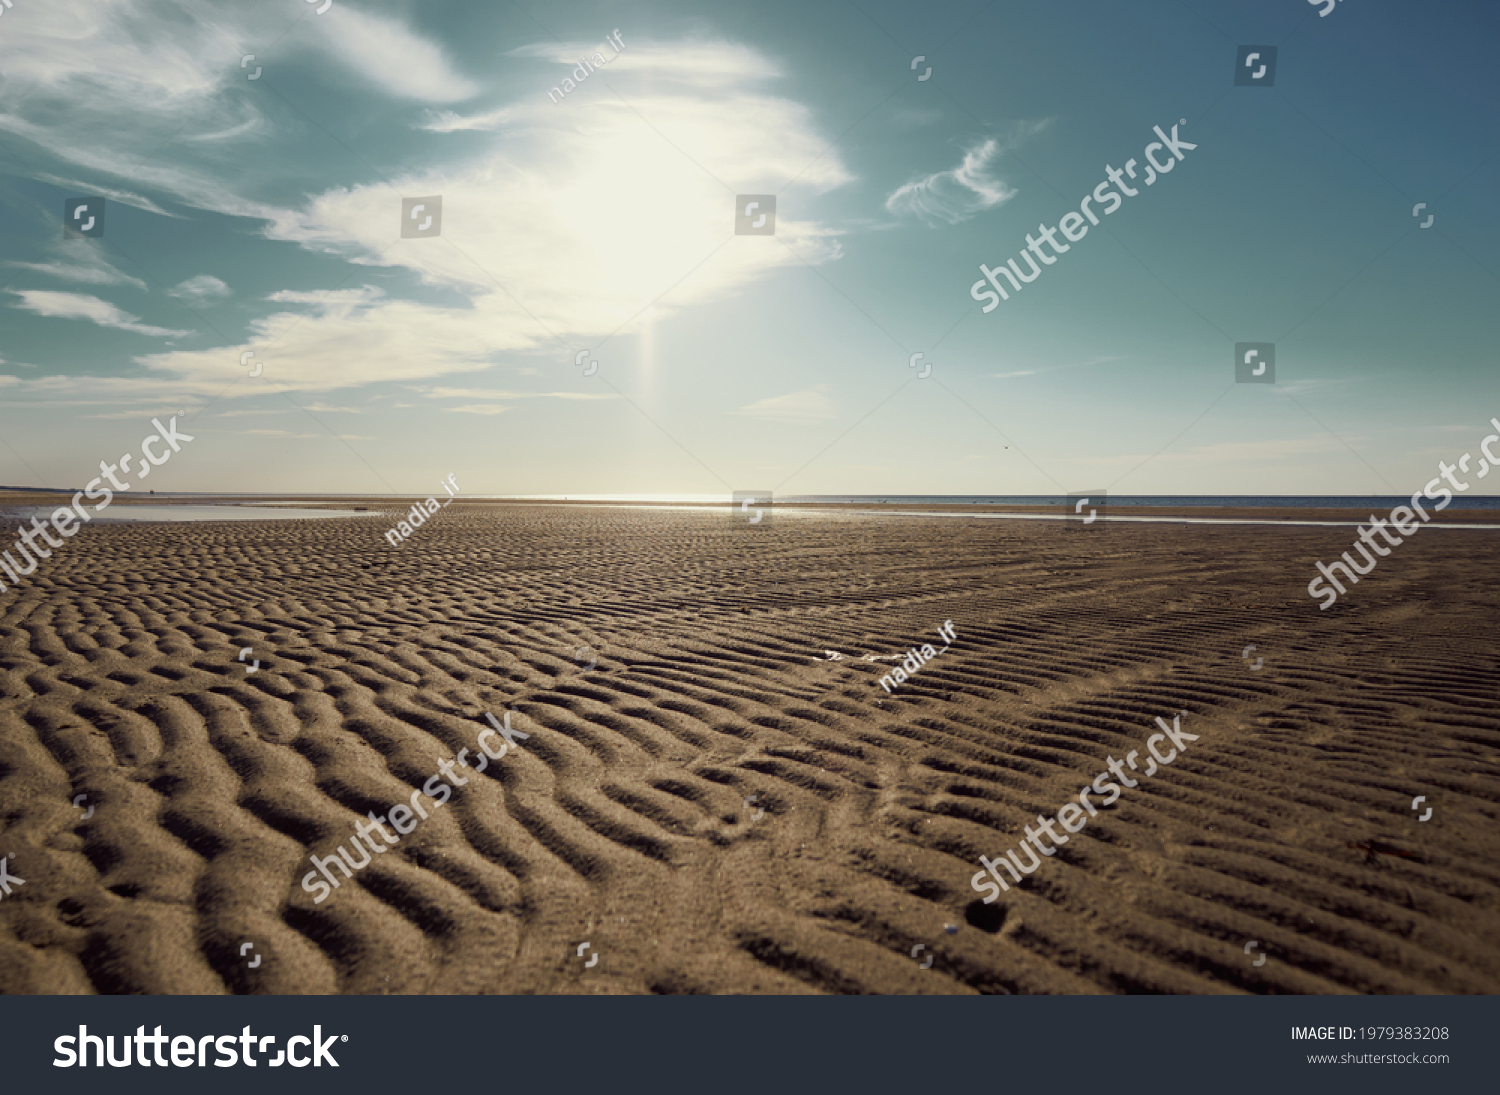 the surface of the sand against a blue sky with white clouds, upward view.  #1979383208